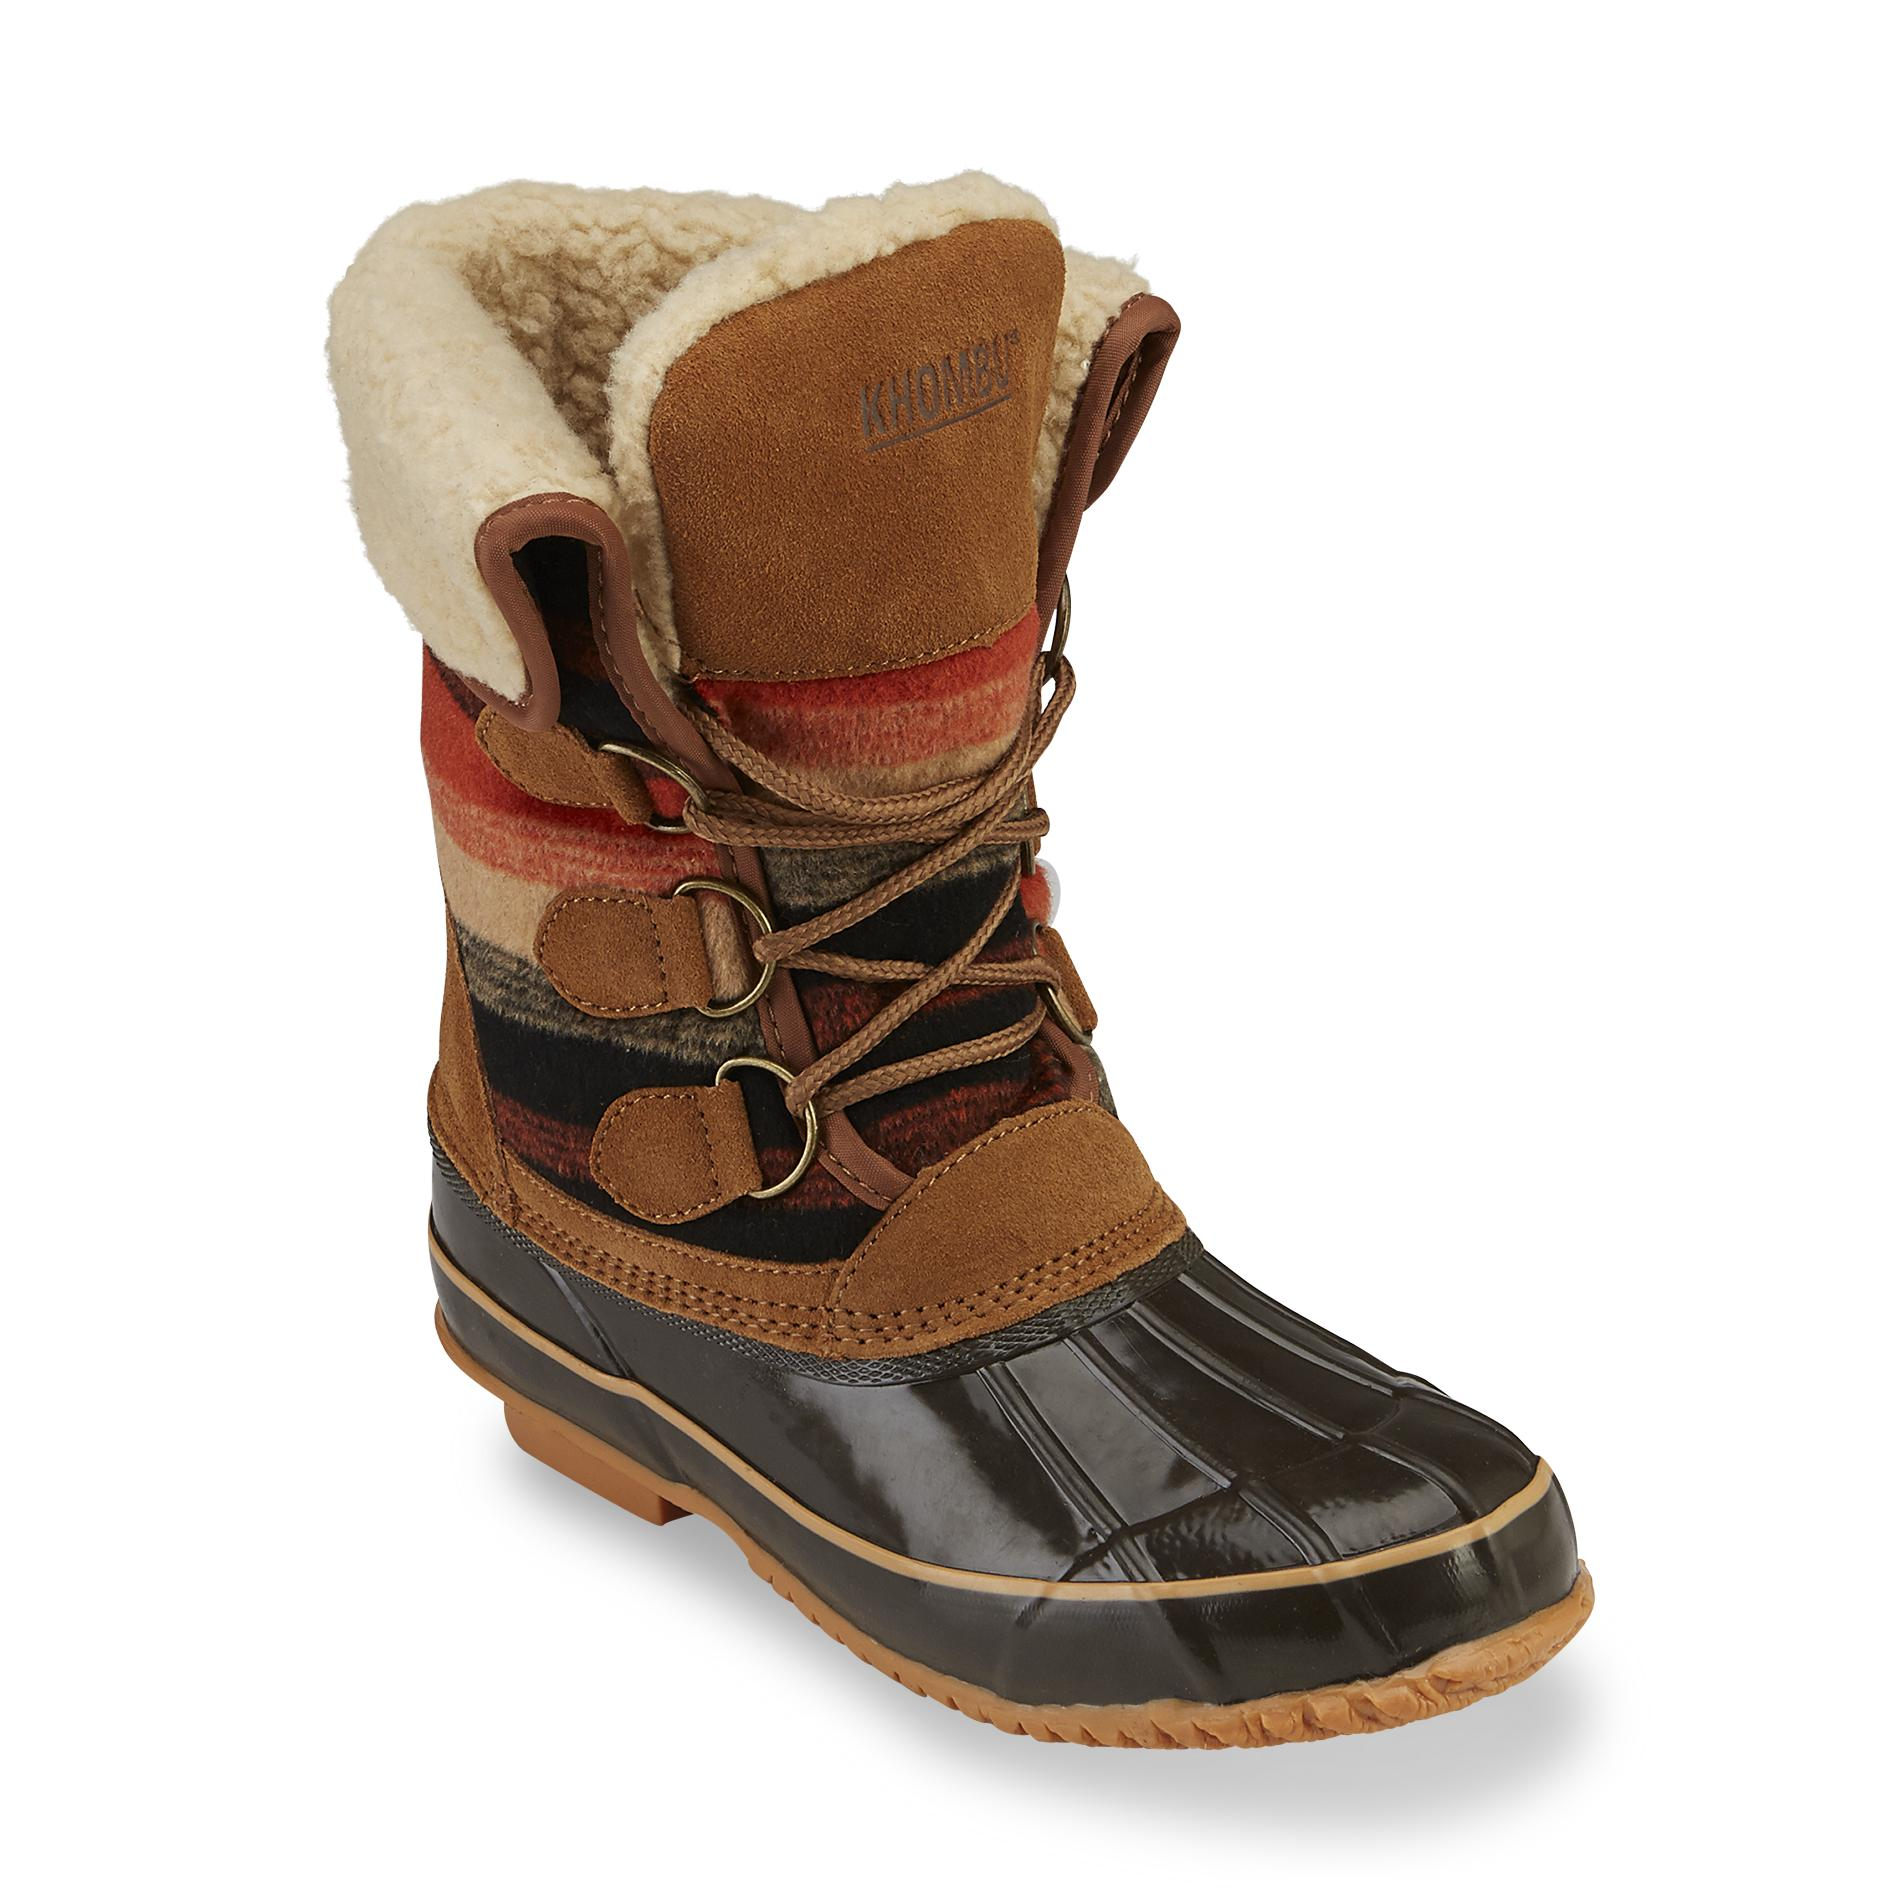 khombu boots khombu womenu0027s jilly brown/multicolor waterproof winter boot DGOKUHK